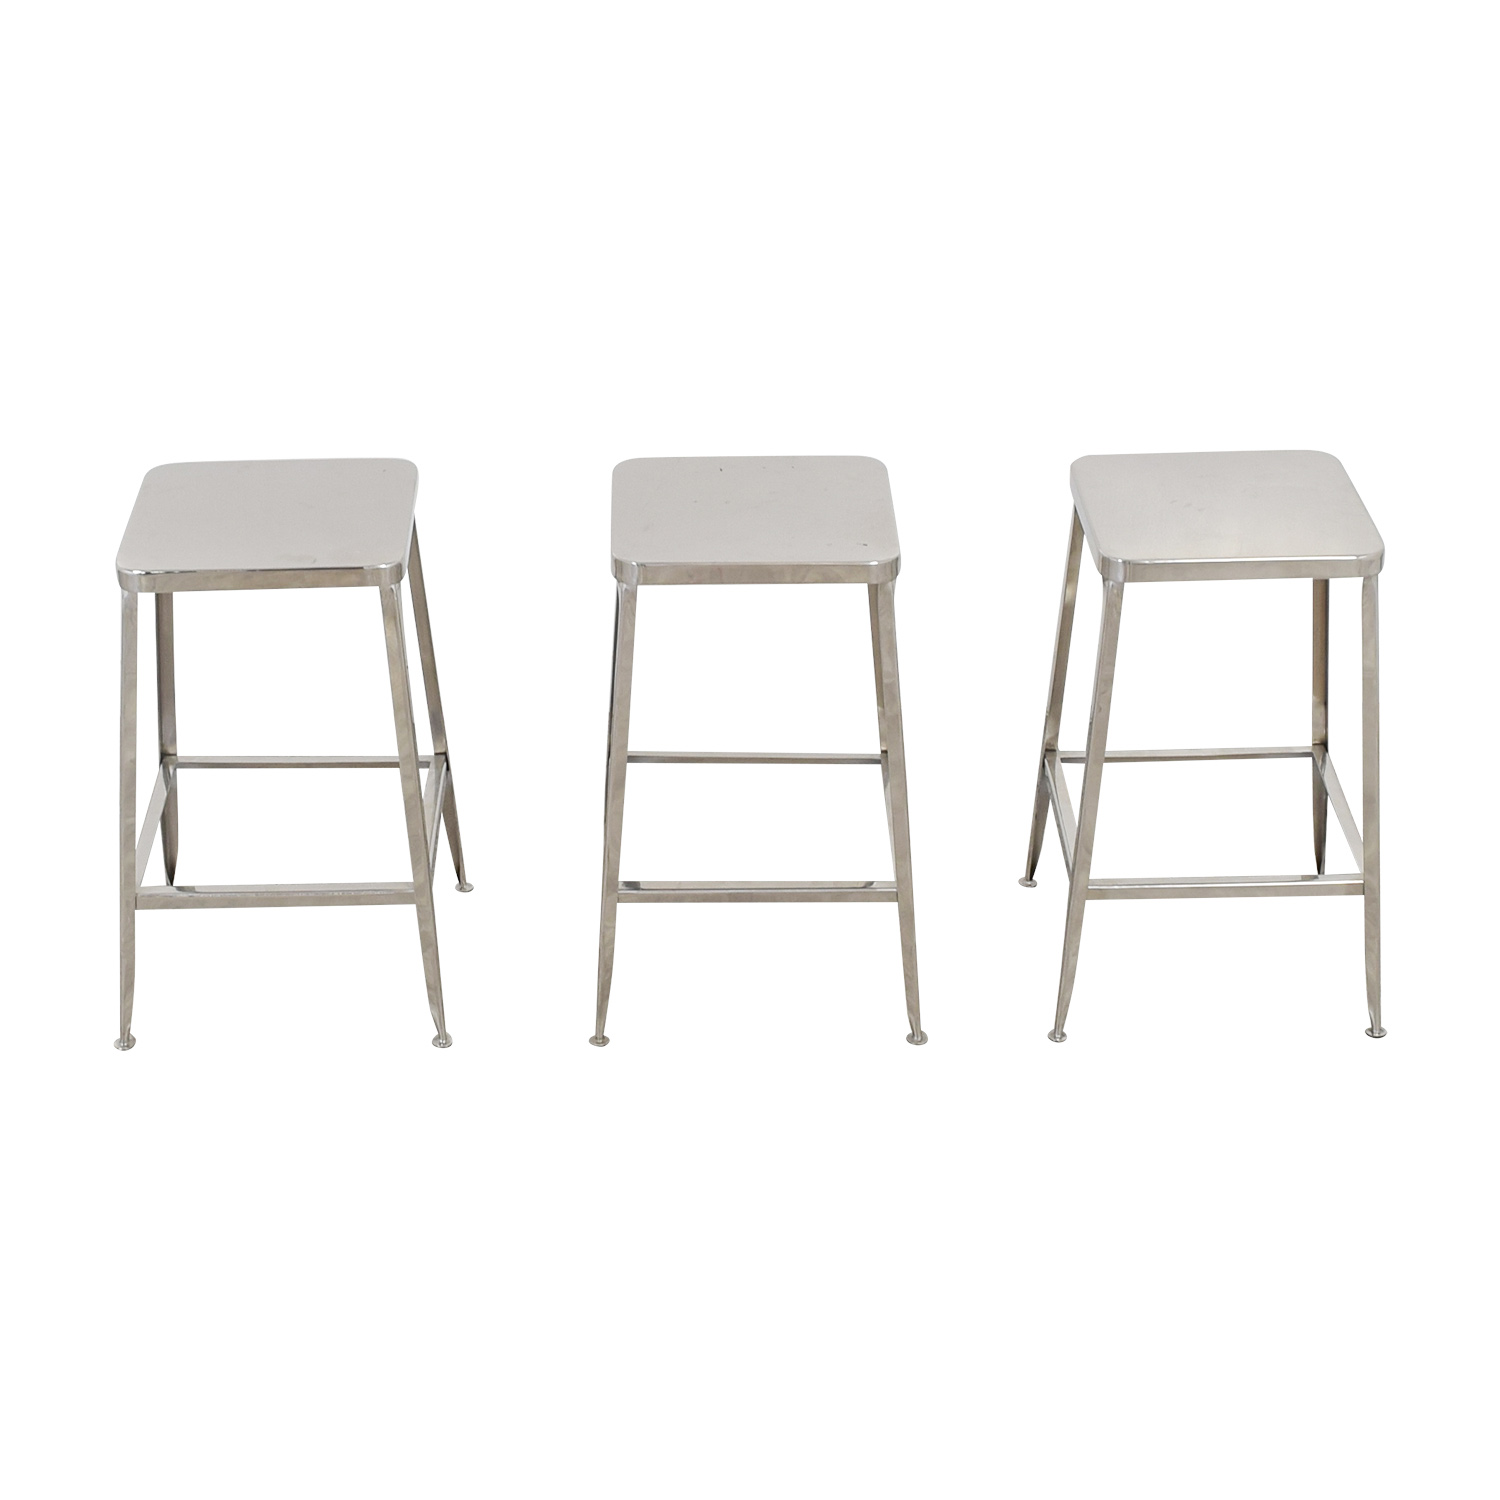 Admirable 56 Off Cb2 Cb2 Flint Metal Counter Stools Chairs Alphanode Cool Chair Designs And Ideas Alphanodeonline